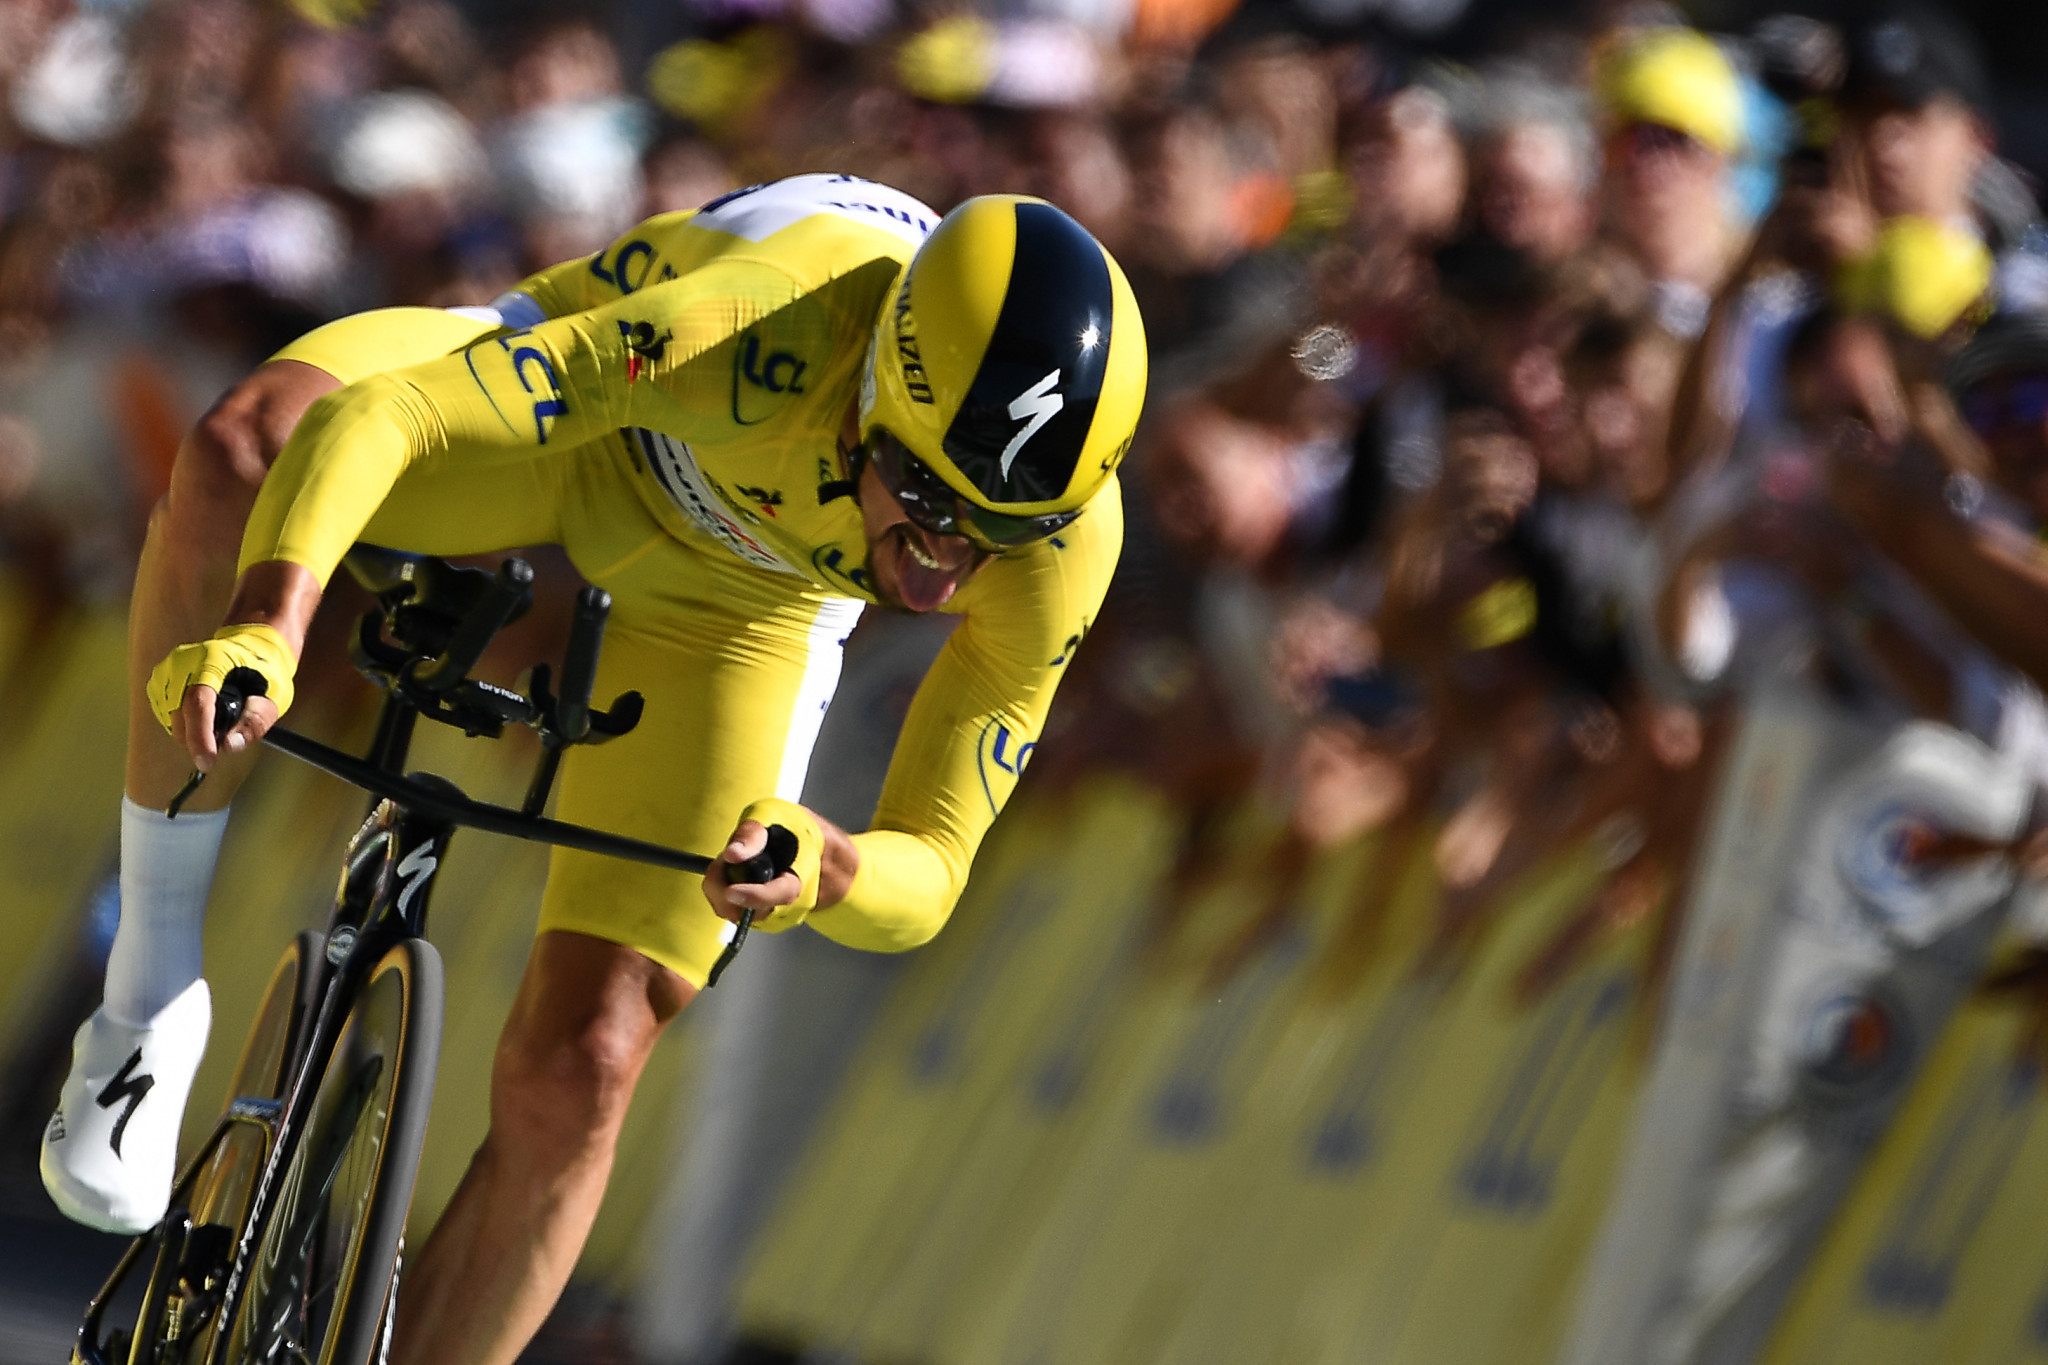 Alaphilippe extends overall lead with time trial victory on stage 13 at Tour de France